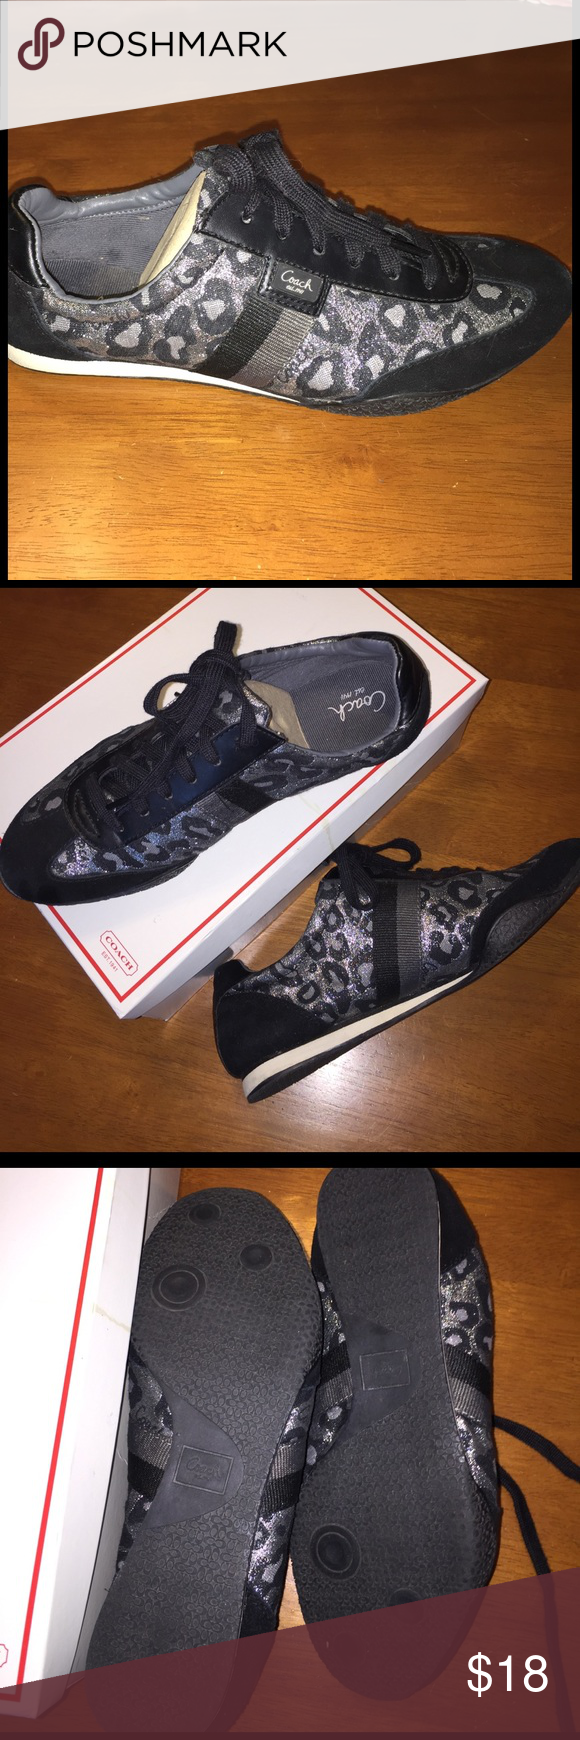 "Coach Metallic Ocelot Grey Sneaker Size 9 Authentic ""Kinsley"" Coach metallic grey/black sneaker size 9. Ocelot print. Worn only a few times. In good shape. Mark on the sole of the right shoe seen in last pic. Coach Shoes Athletic Shoes"